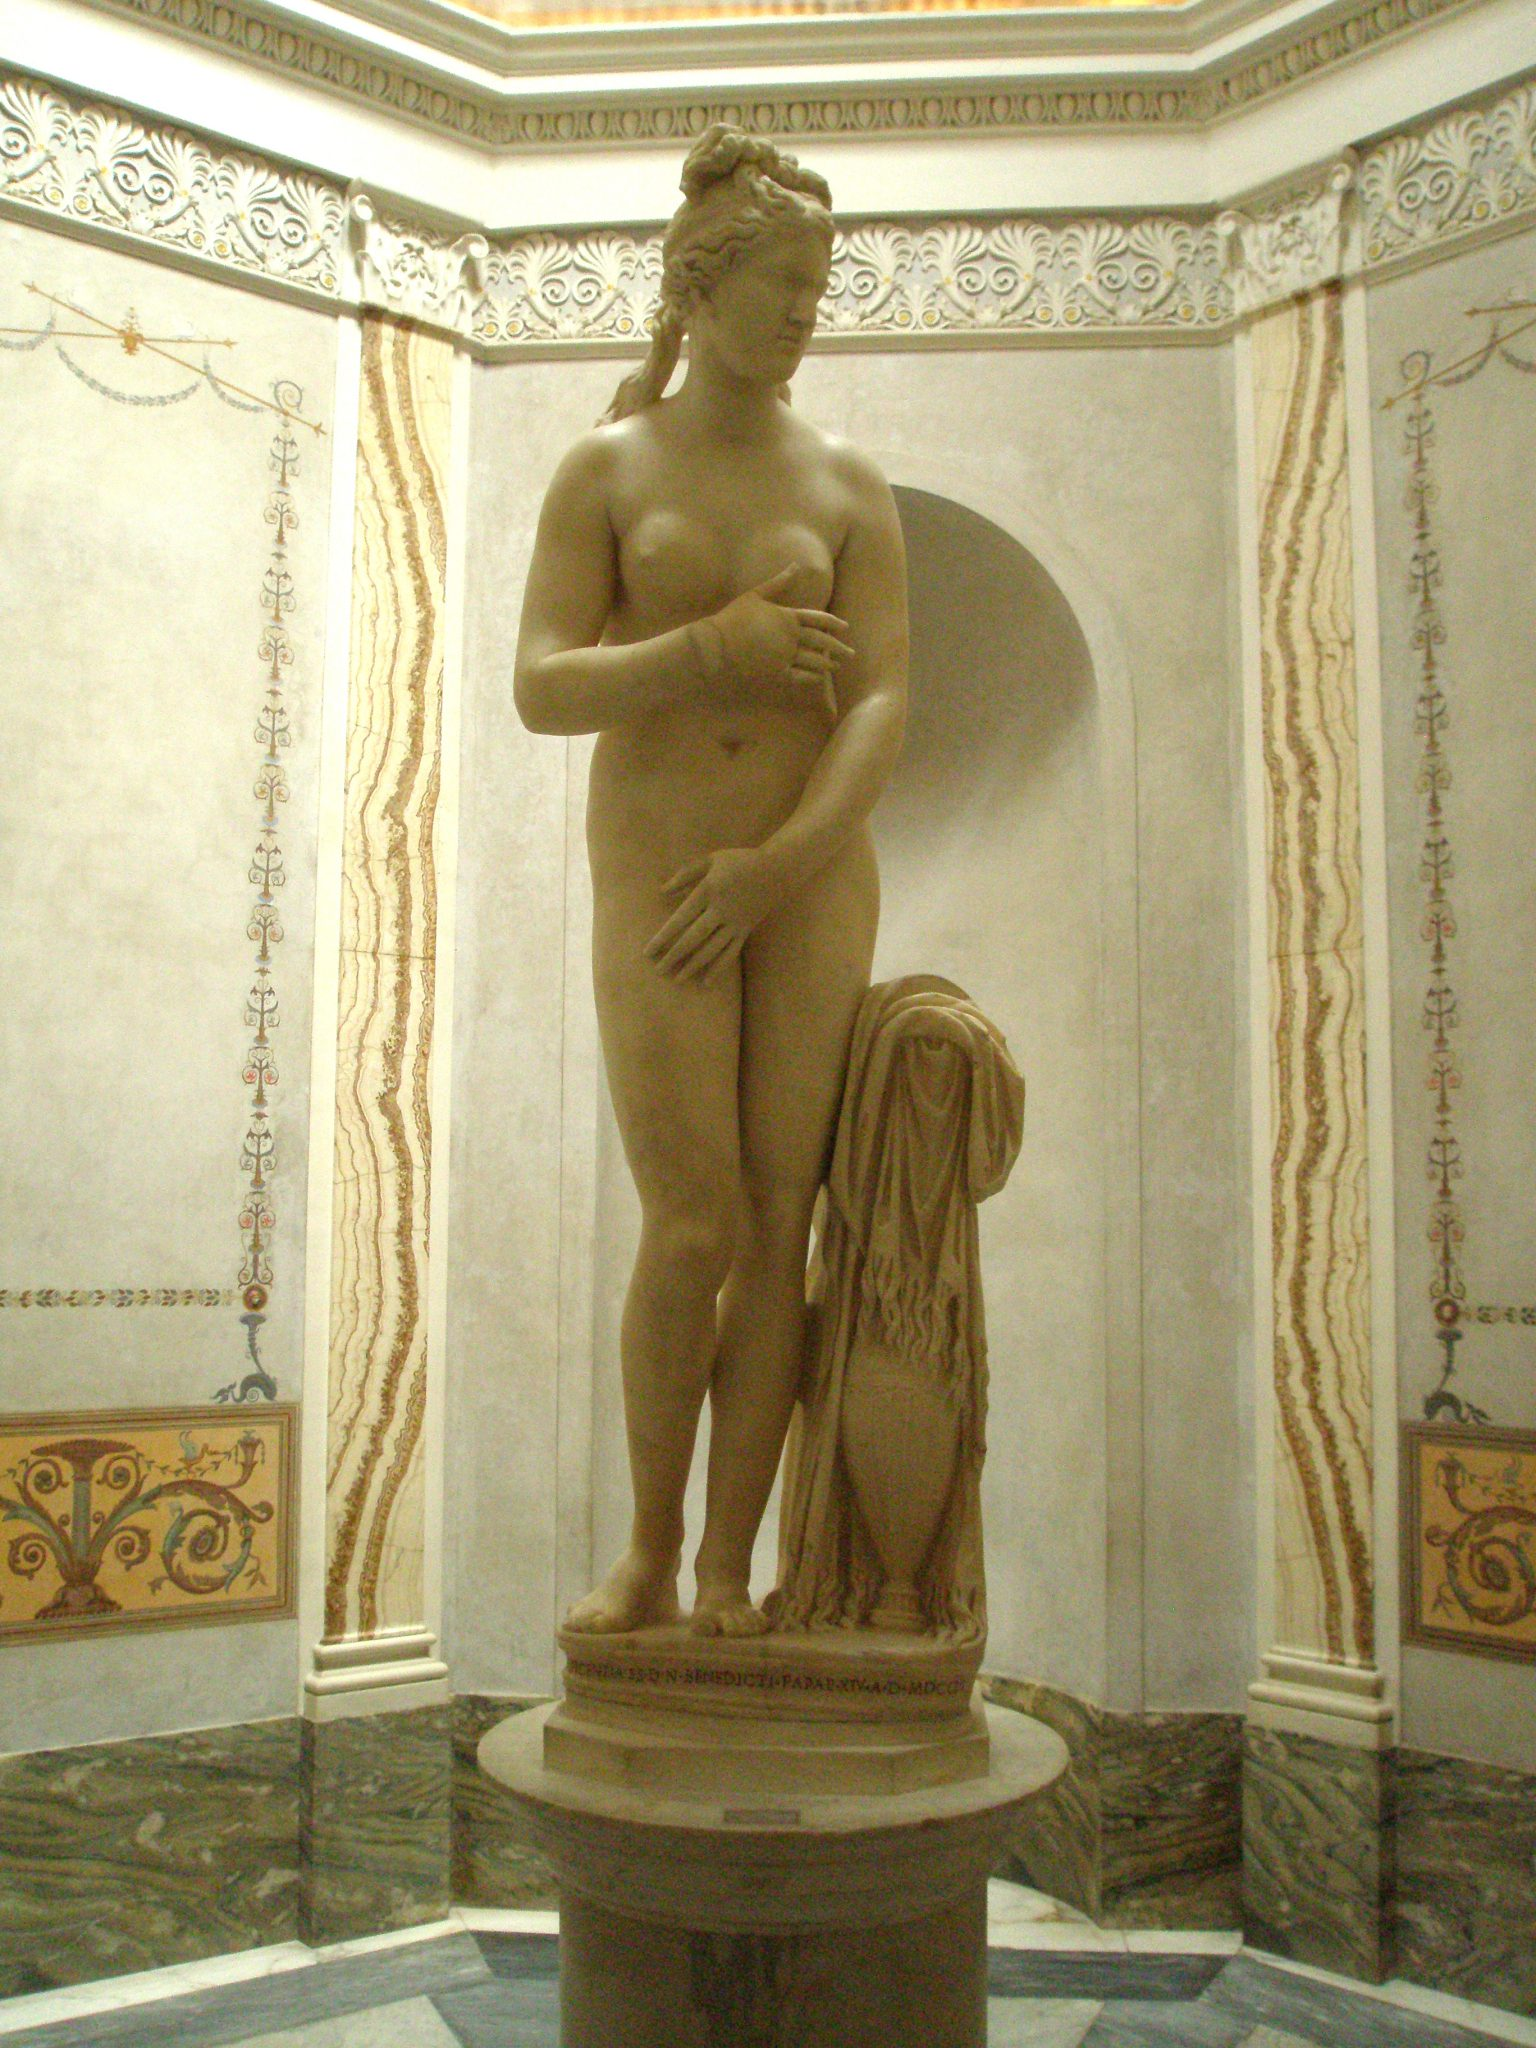 The Capitoline Venus. This is a replica of the original by Praxiteles (who lived in the 4th century BC). This copy of Venus was found in Rome around 1666--1670, and it's assumed the statue was made between 96AD and 192AD.